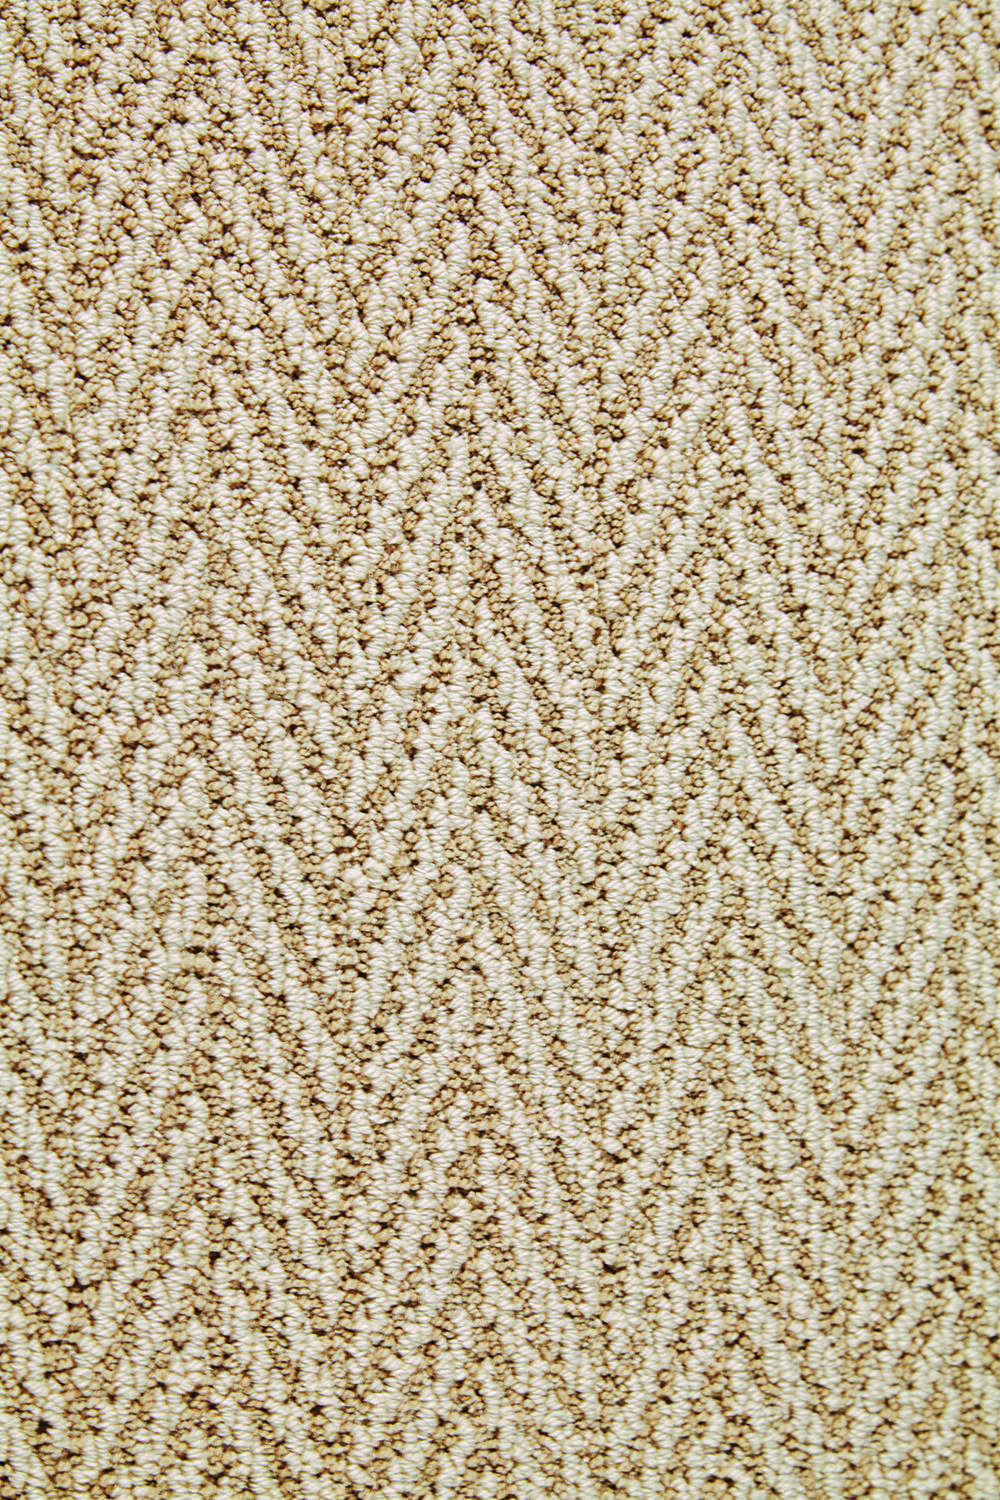 Patterned Carpet A Beautiful Herringbone Patterned Carpet Stainmaster Carpet In